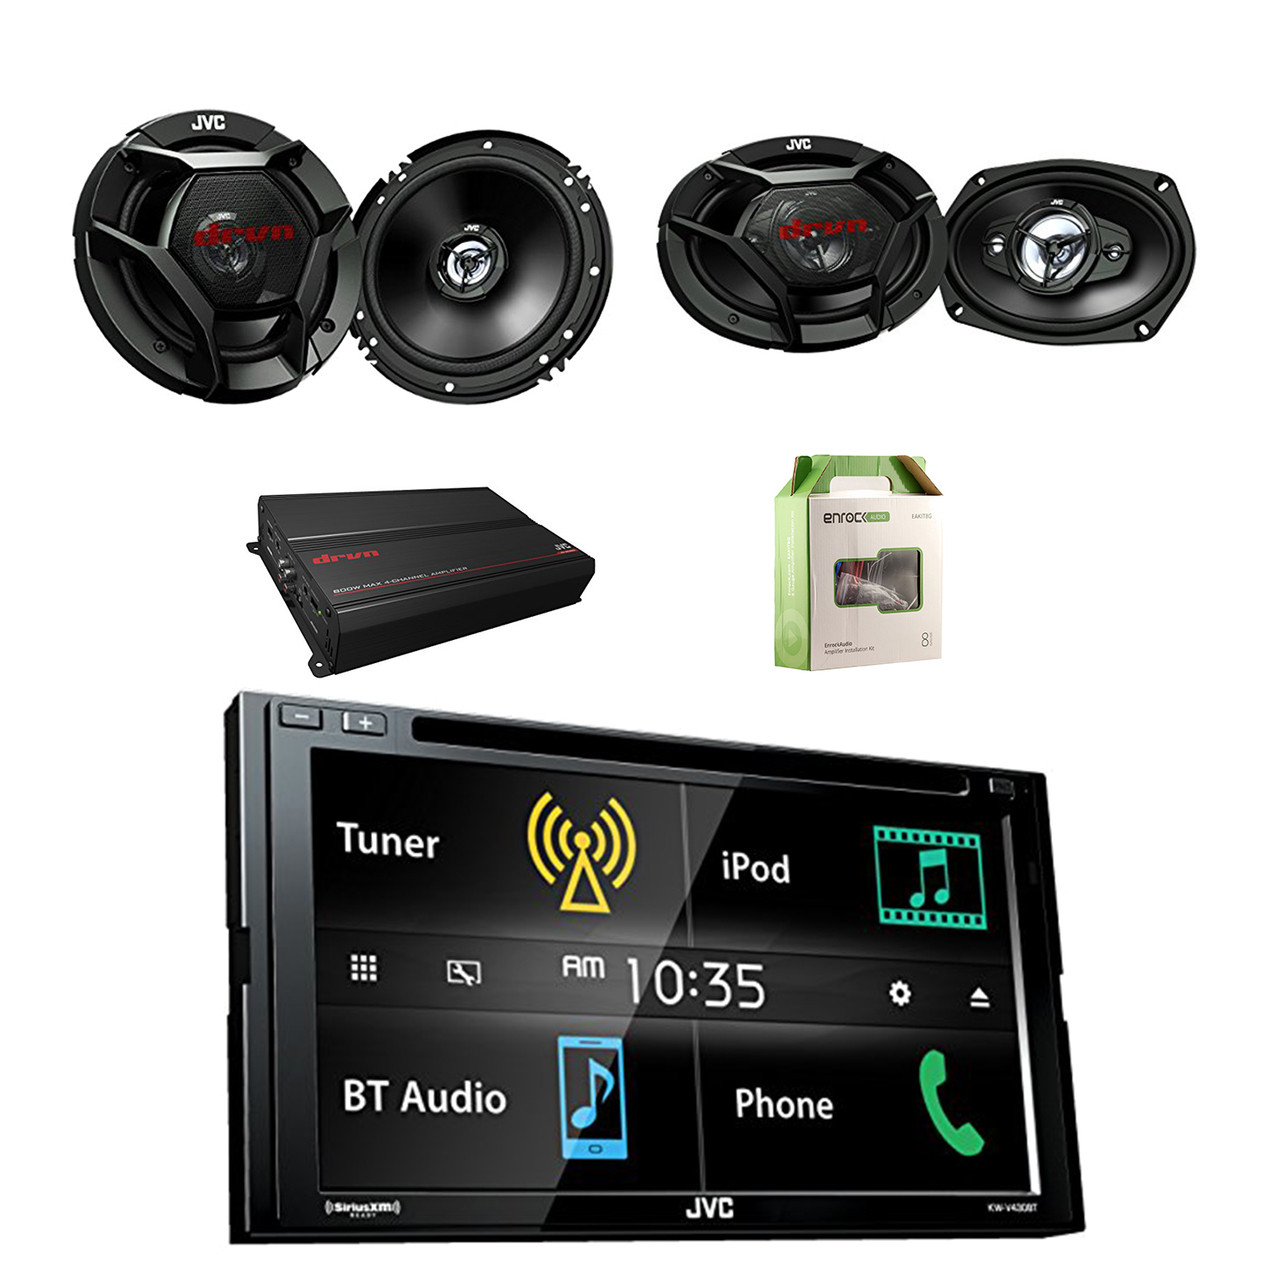 jvc double din bluetooth lcd touchscreen mp3 car stereo receiver w jvc 2 way factory upgrade coaxial speakers pair jvc 4 way speakers pair jvc 4 chan dr  [ 1280 x 1280 Pixel ]